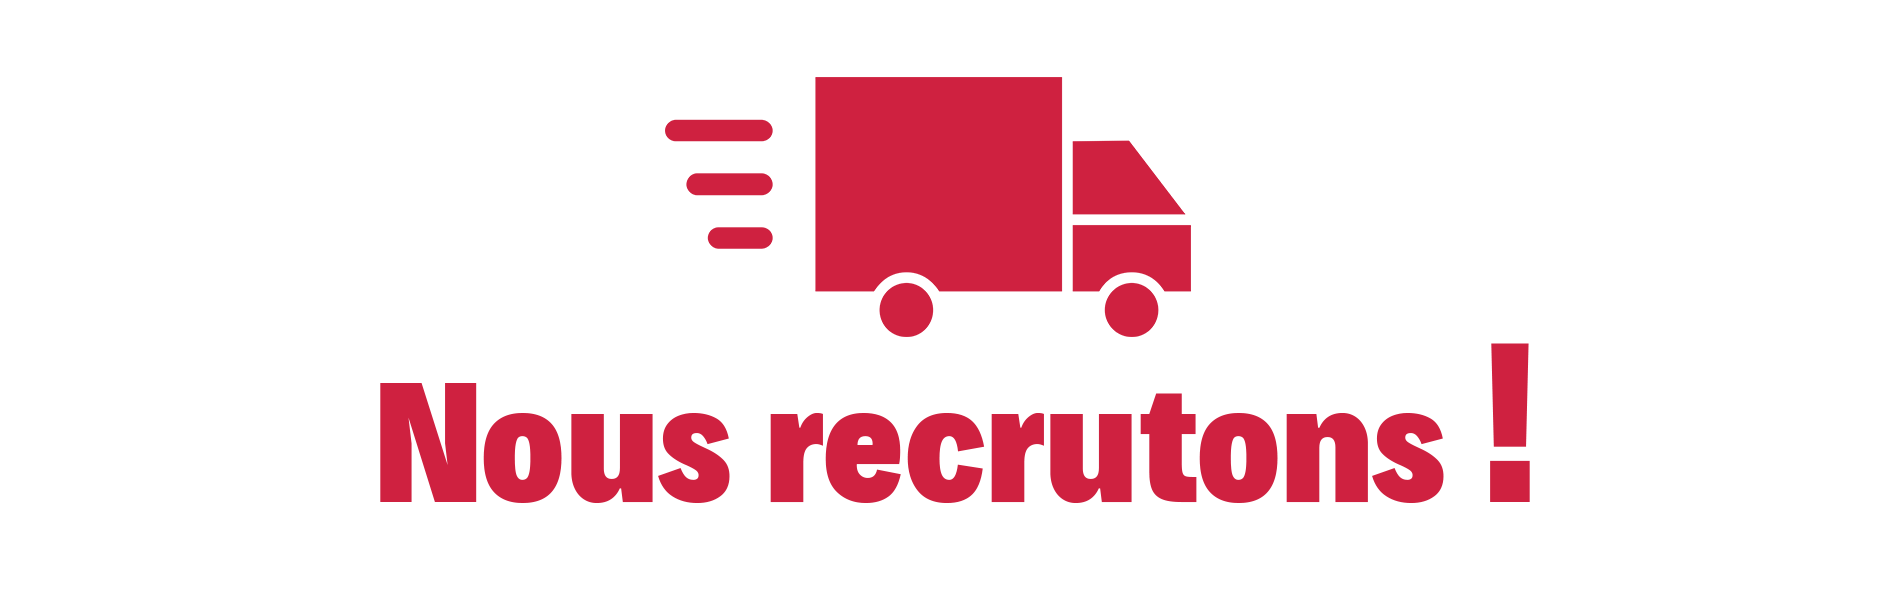 Nous recrutons png